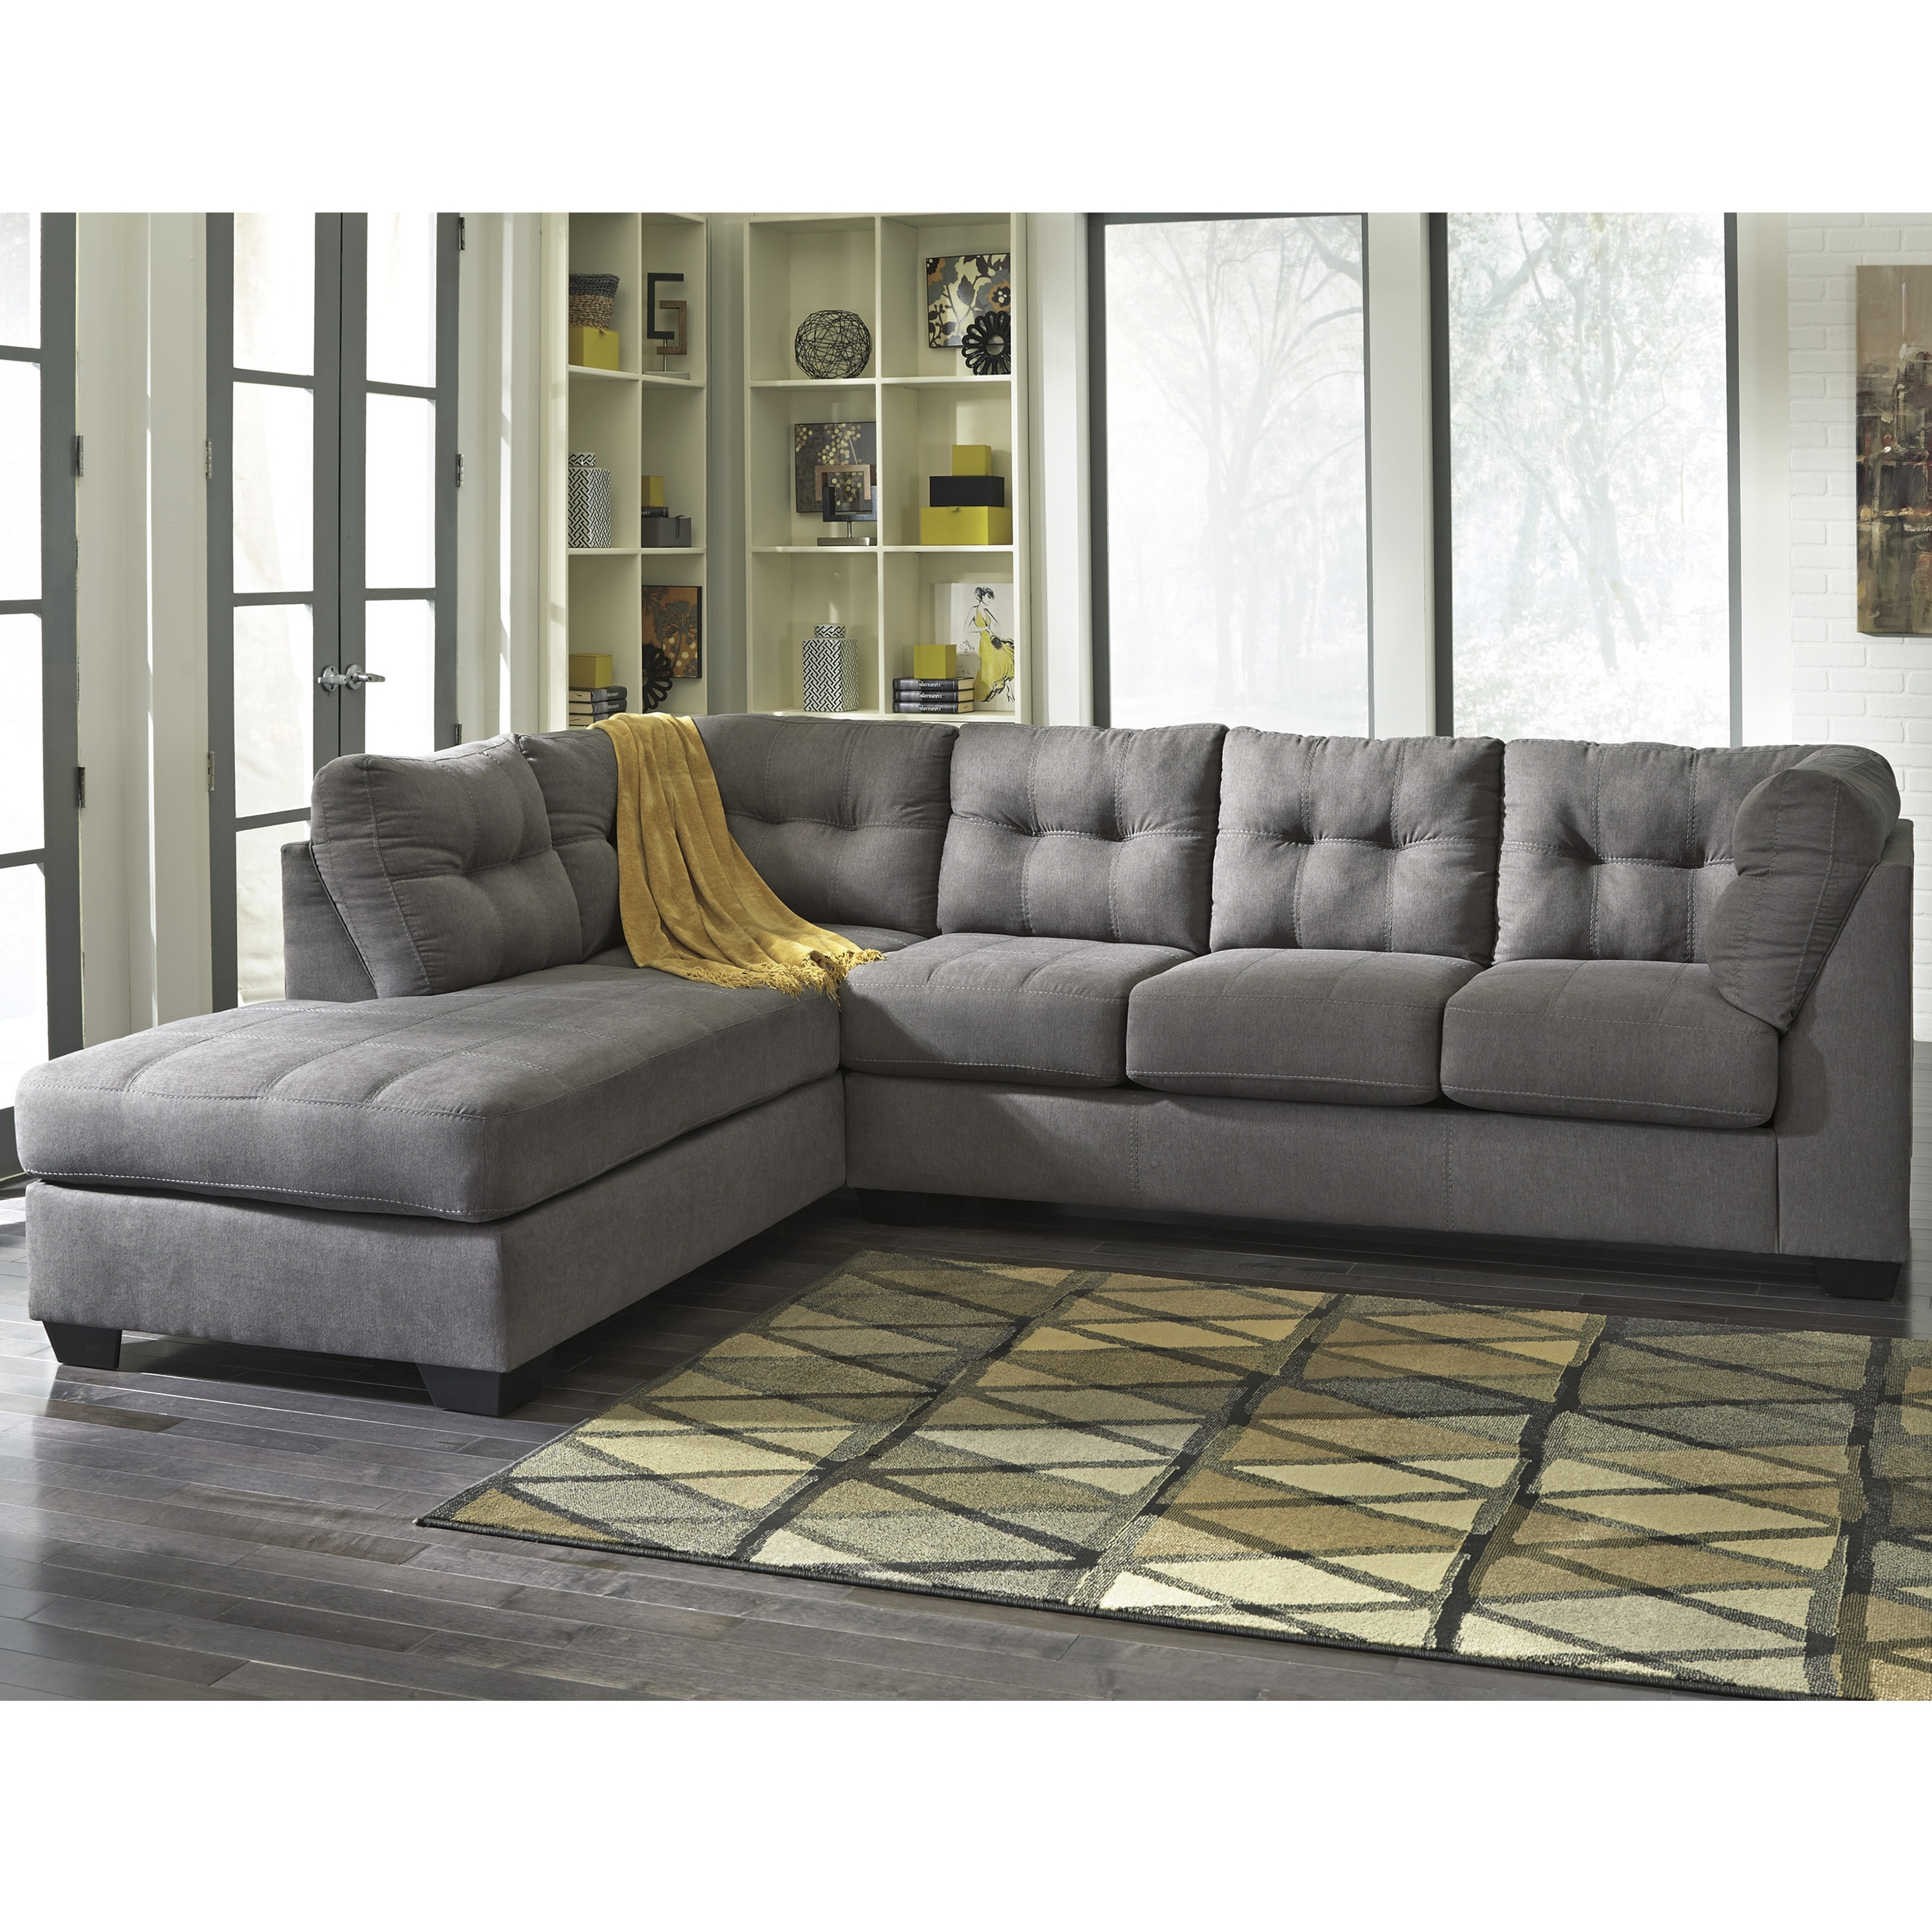 Furniture: Cool Cheap Sectional For Elegant Living Room Design Pertaining To Lucy Grey 2 Piece Sleeper Sectionals With Raf Chaise (View 11 of 25)